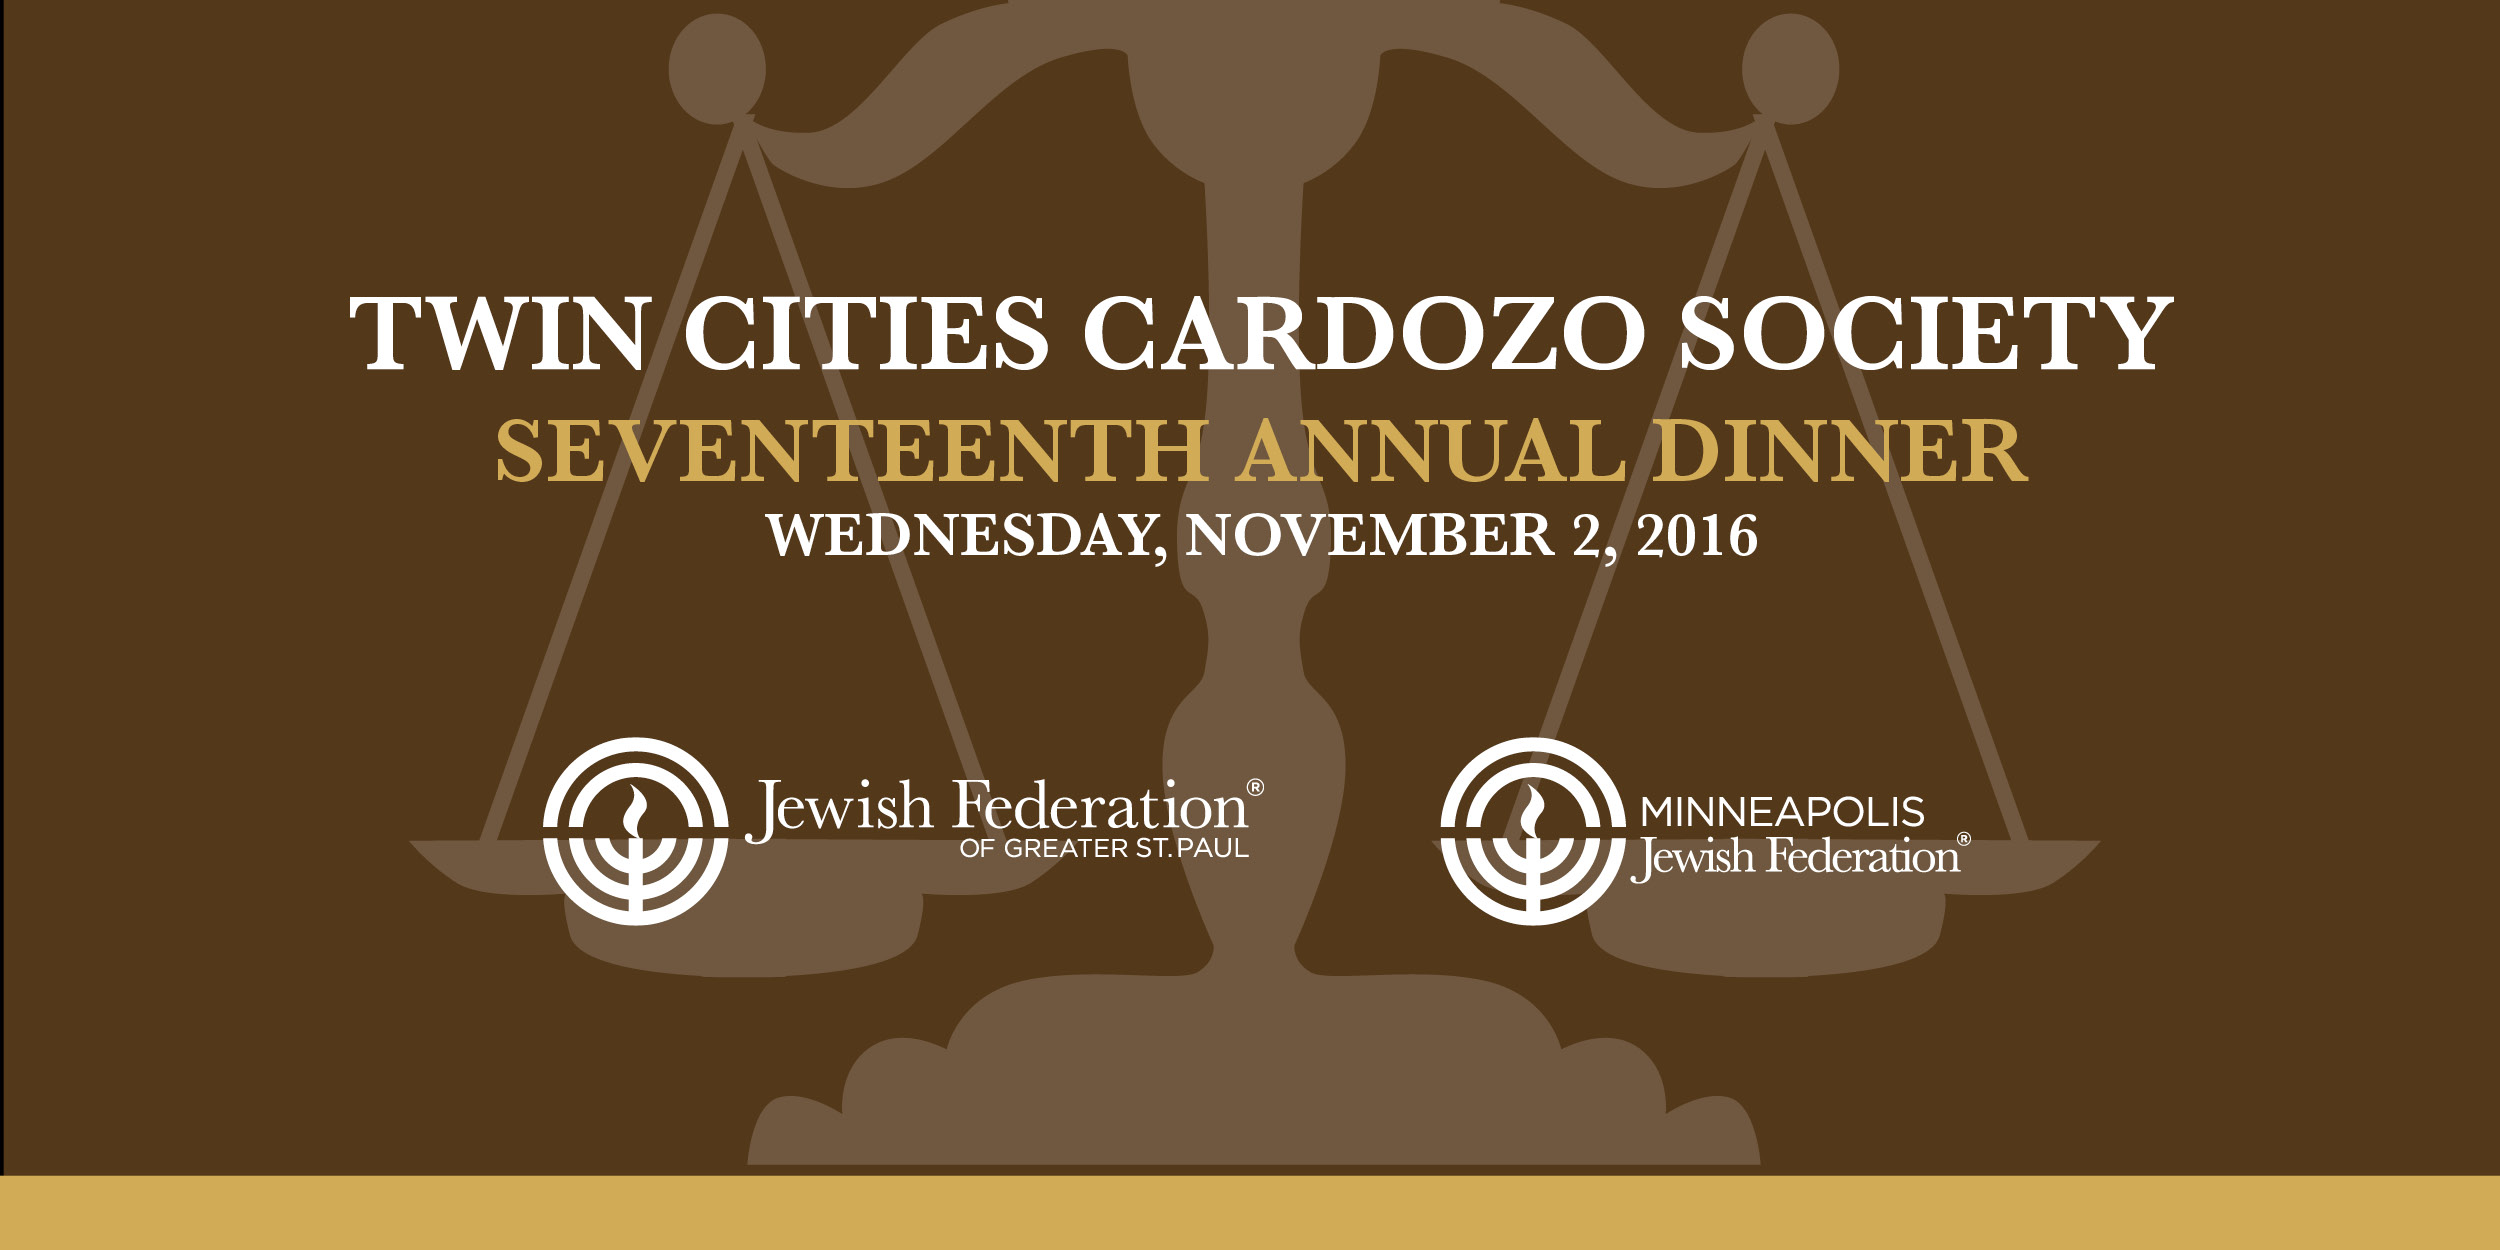 Twin Cities Cardozo Society Seventeenth Annual Dinner Teaser Image